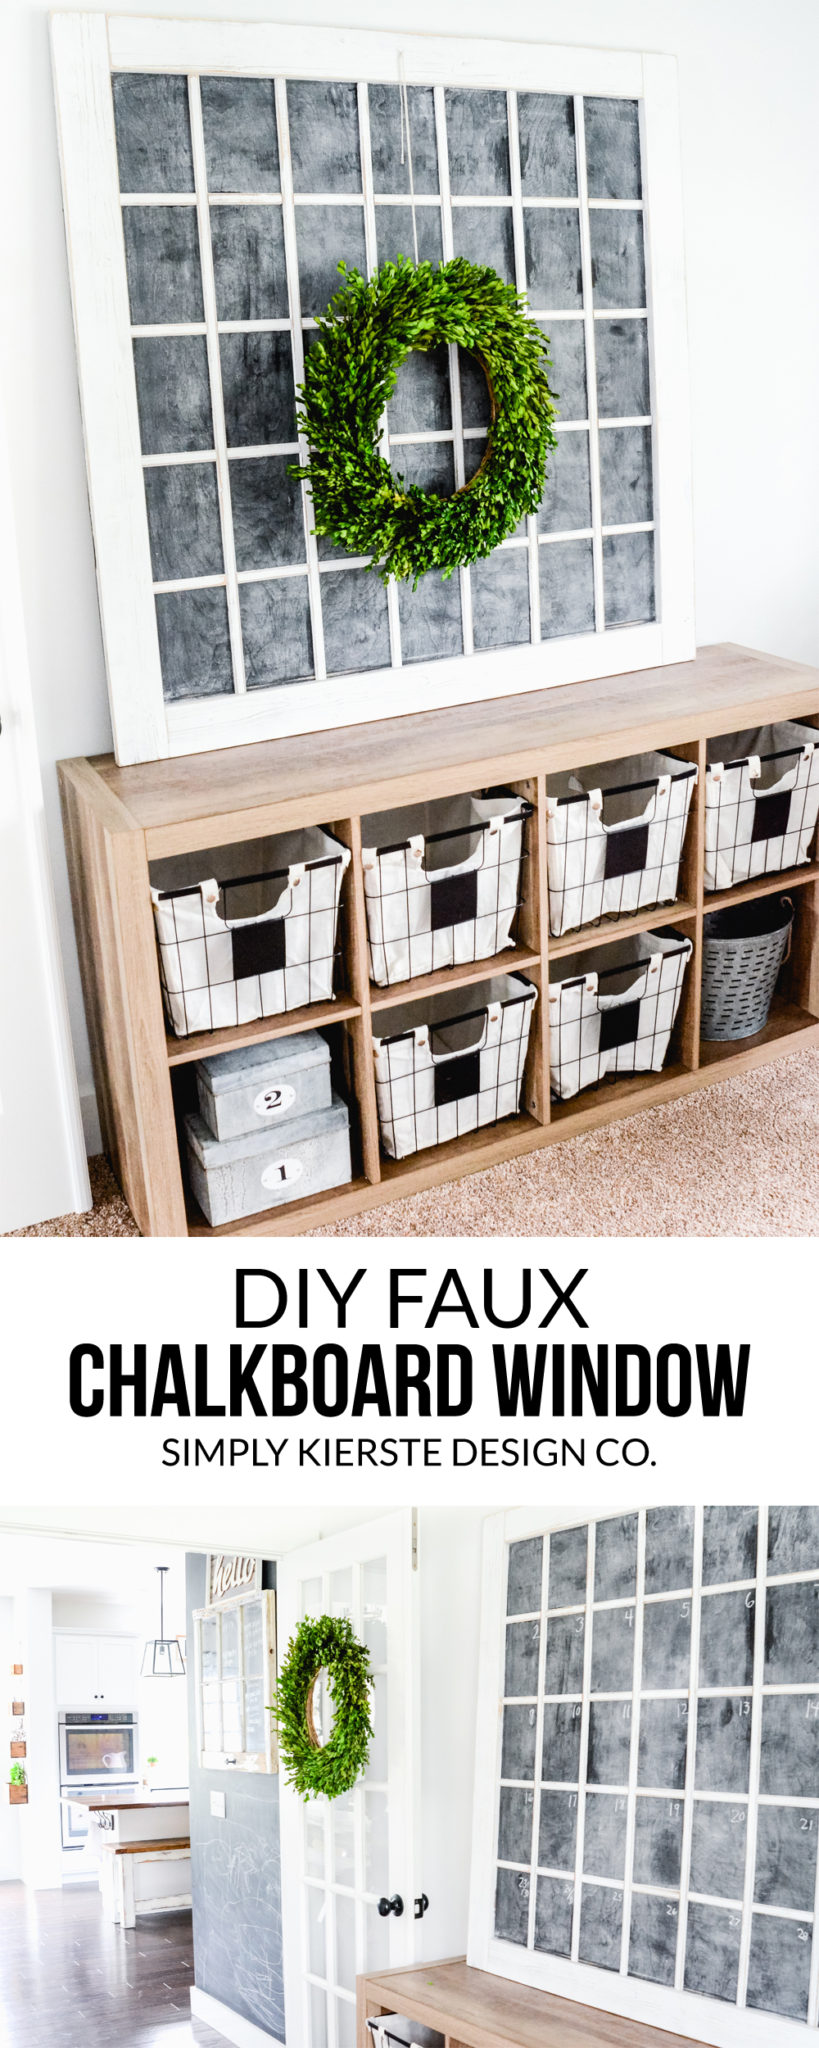 DIY Faux Chalkboard Window | Don't wait to find the perfect old window, just make your own in any size! Perfect farmhouse style! | oldsaltfarm.com